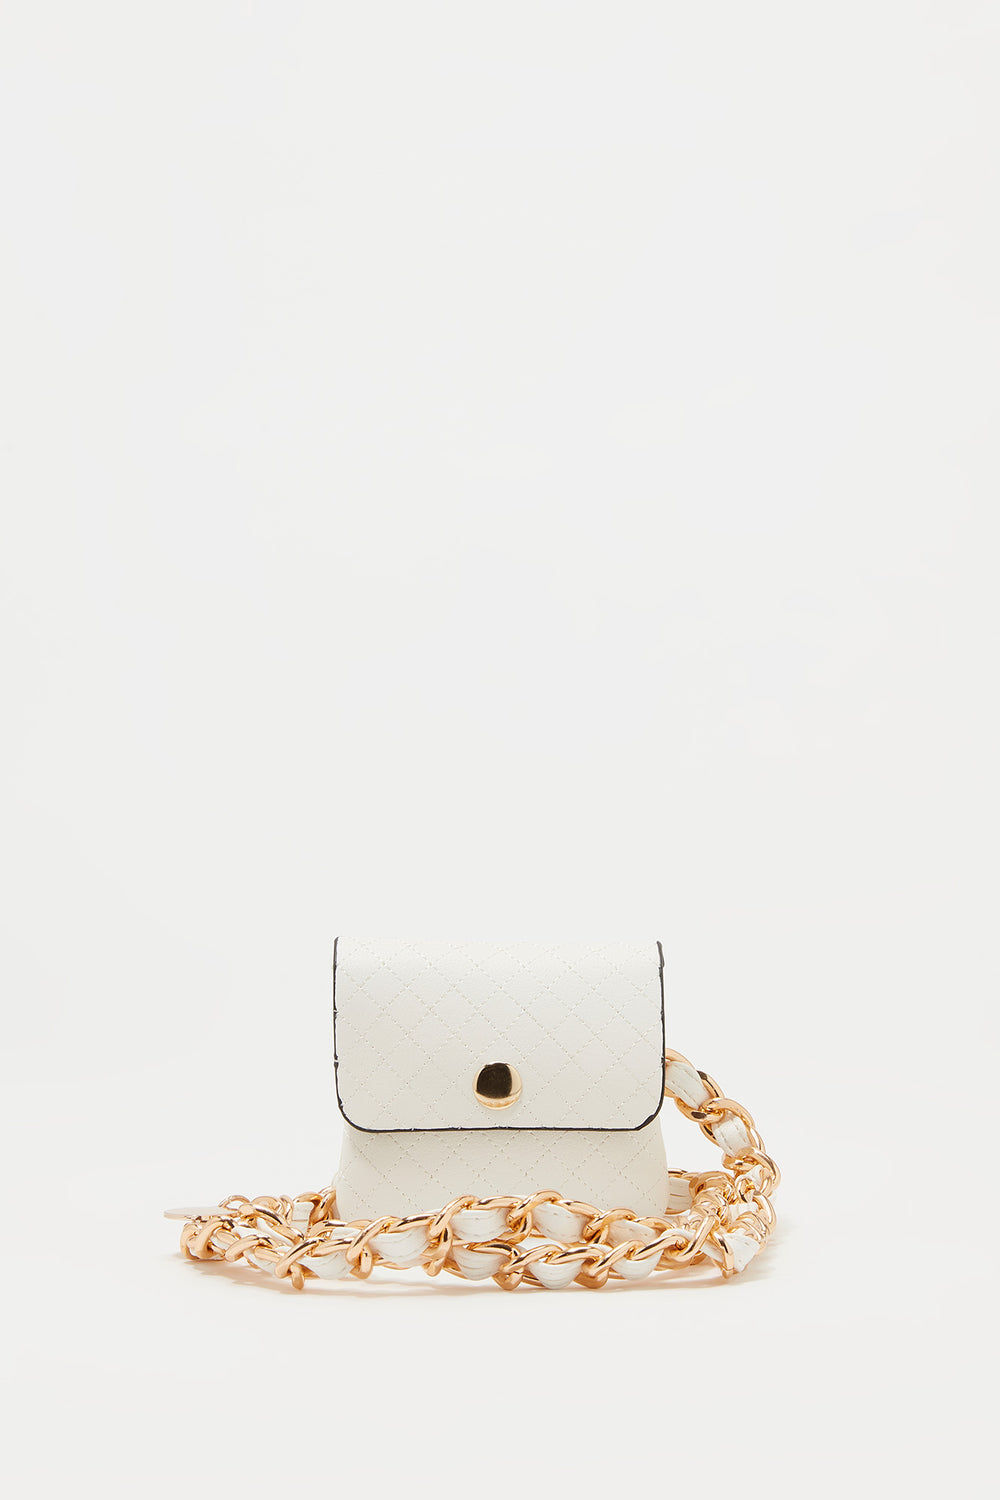 Chain Belt Coin Purse White